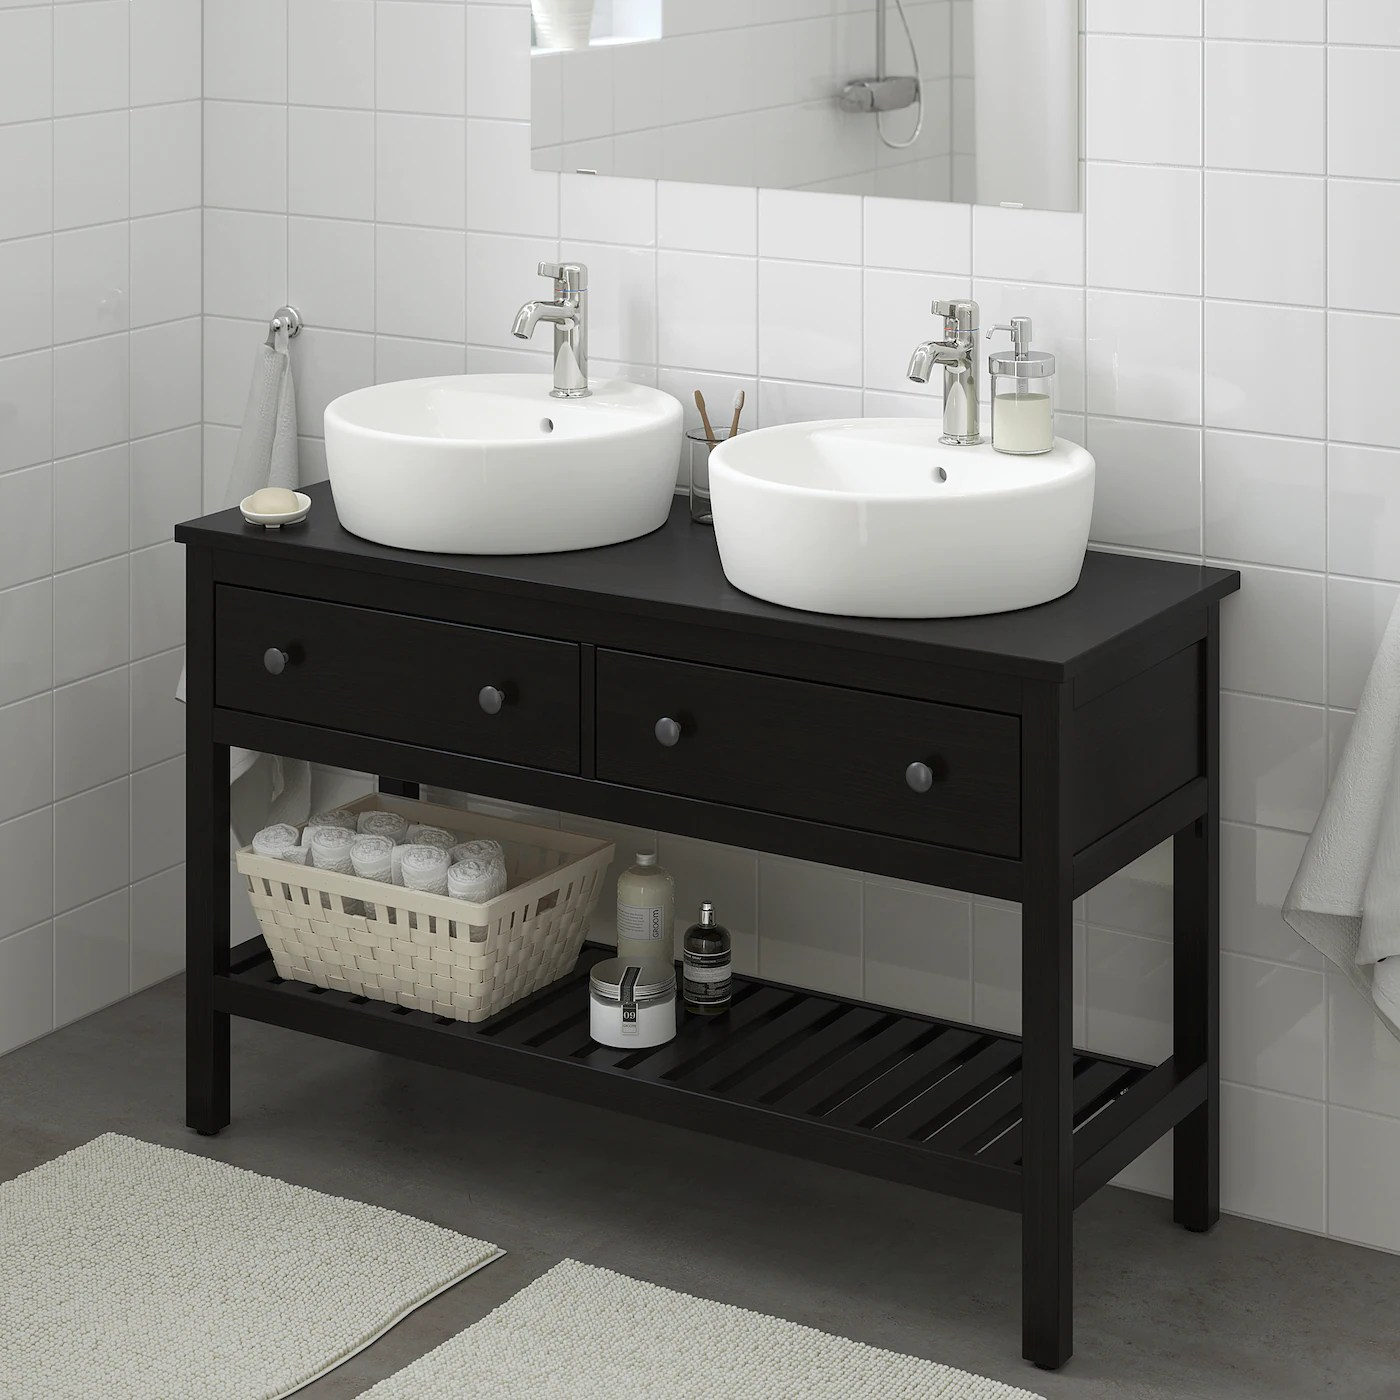 Hemnes Bathroom Vanity 2 Drawers Black Brown Stain Ikea